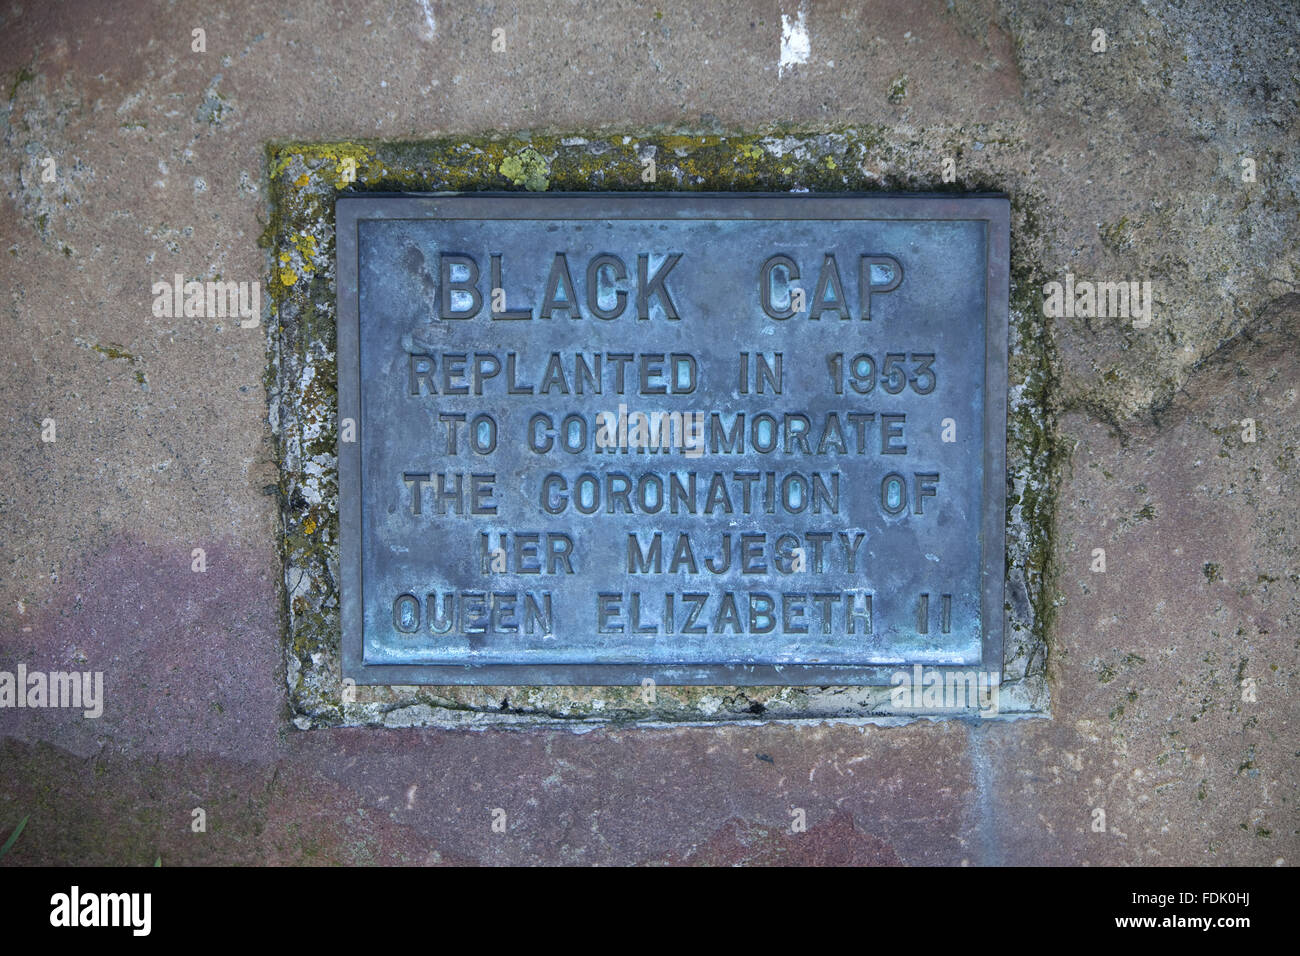 Commemorative plaque marking the coronation of Her Majesty Queen Elizabeth II in 1953 at Black Cap, South Downs, - Stock Image